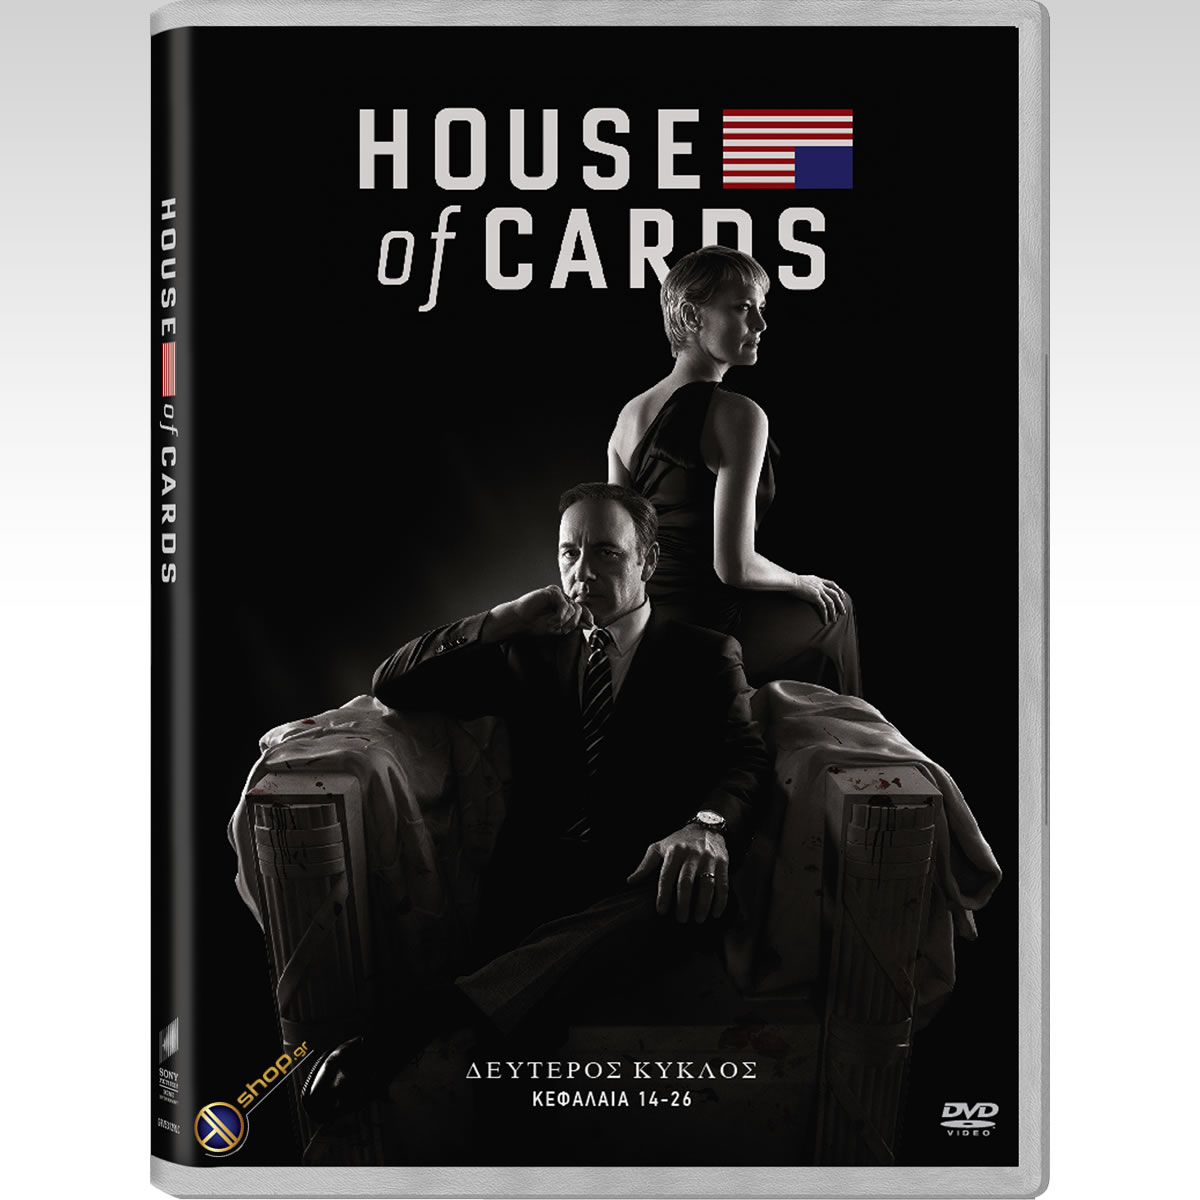 HOUSE OF CARDS Season 2 - HOUSE OF CARDS 2ος ΚΥΚΛΟΣ (4 DVDs)